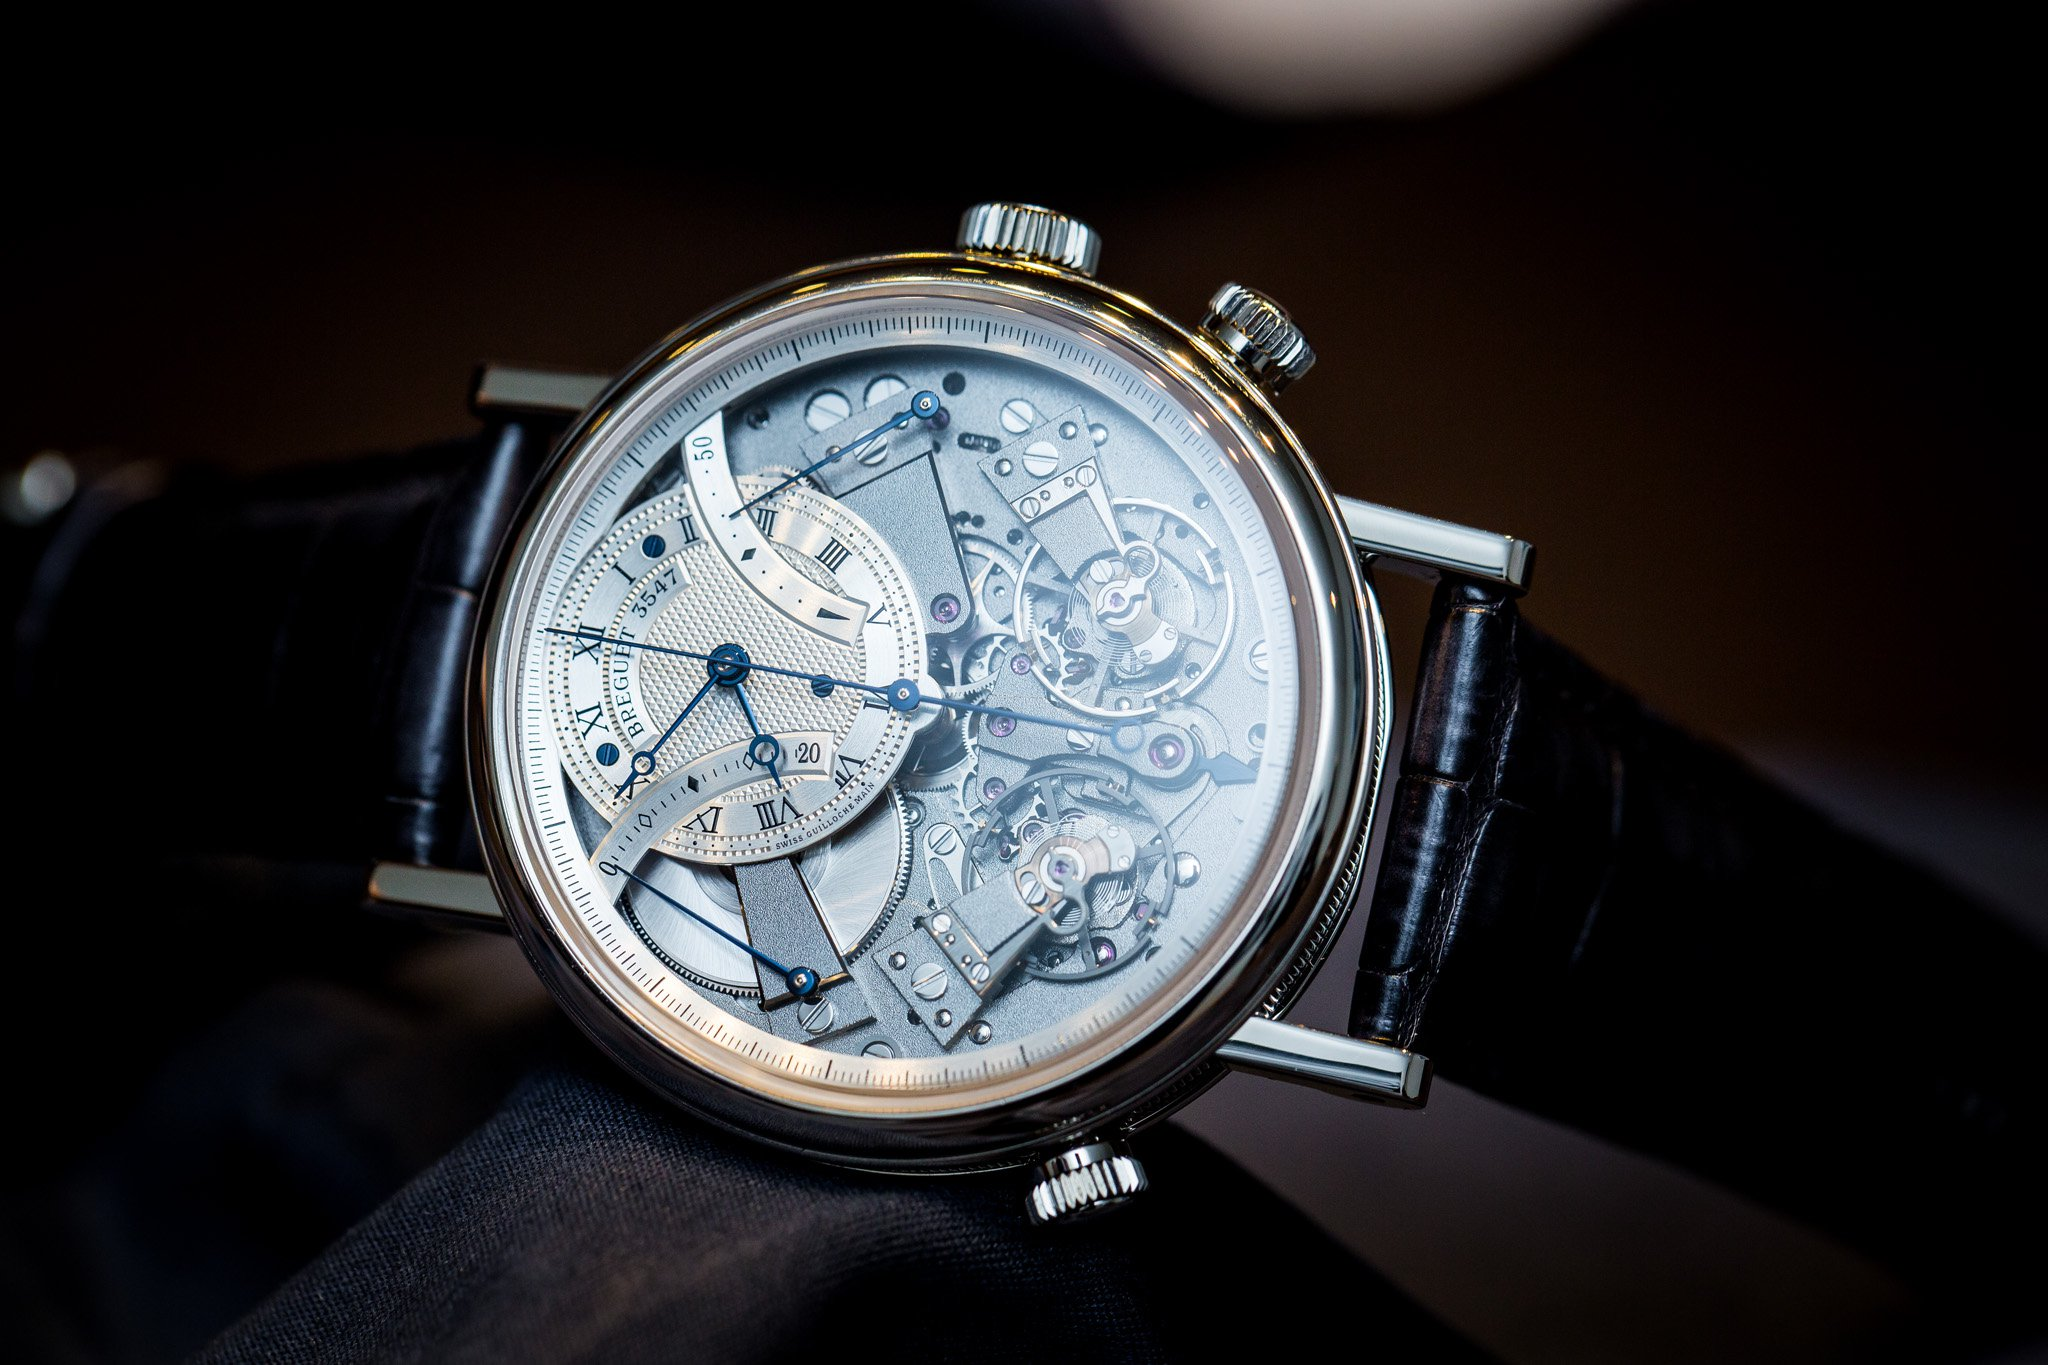 Breguet-Tradition-Chronographe-Replica-Watches